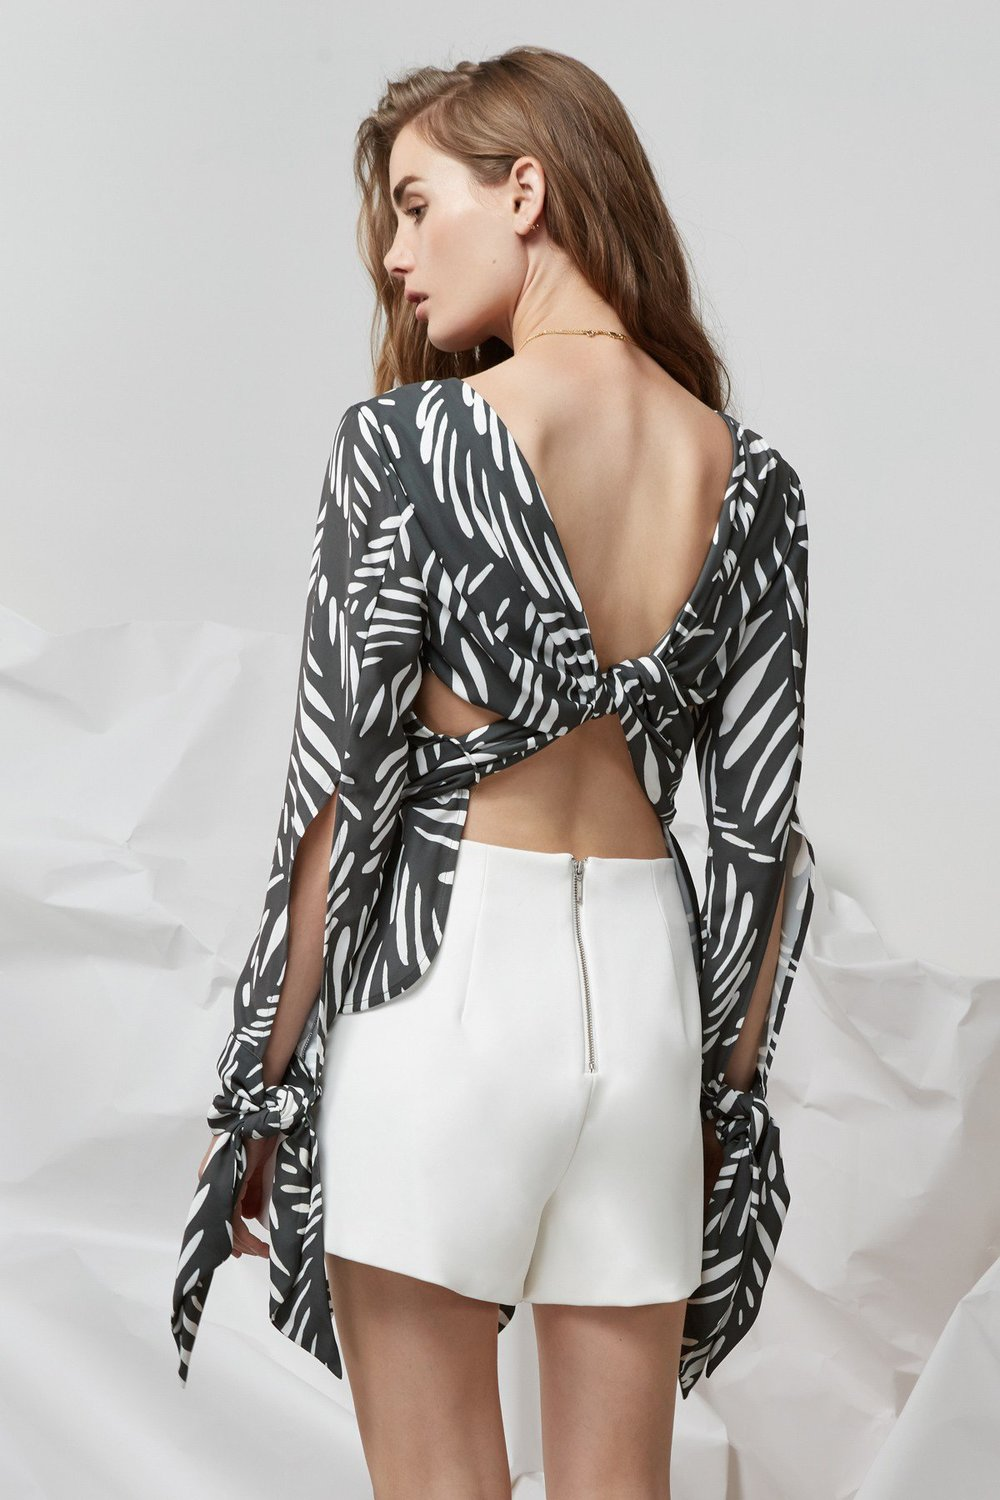 Shop Finders I Spy Tie Back Long Sleeve Top.